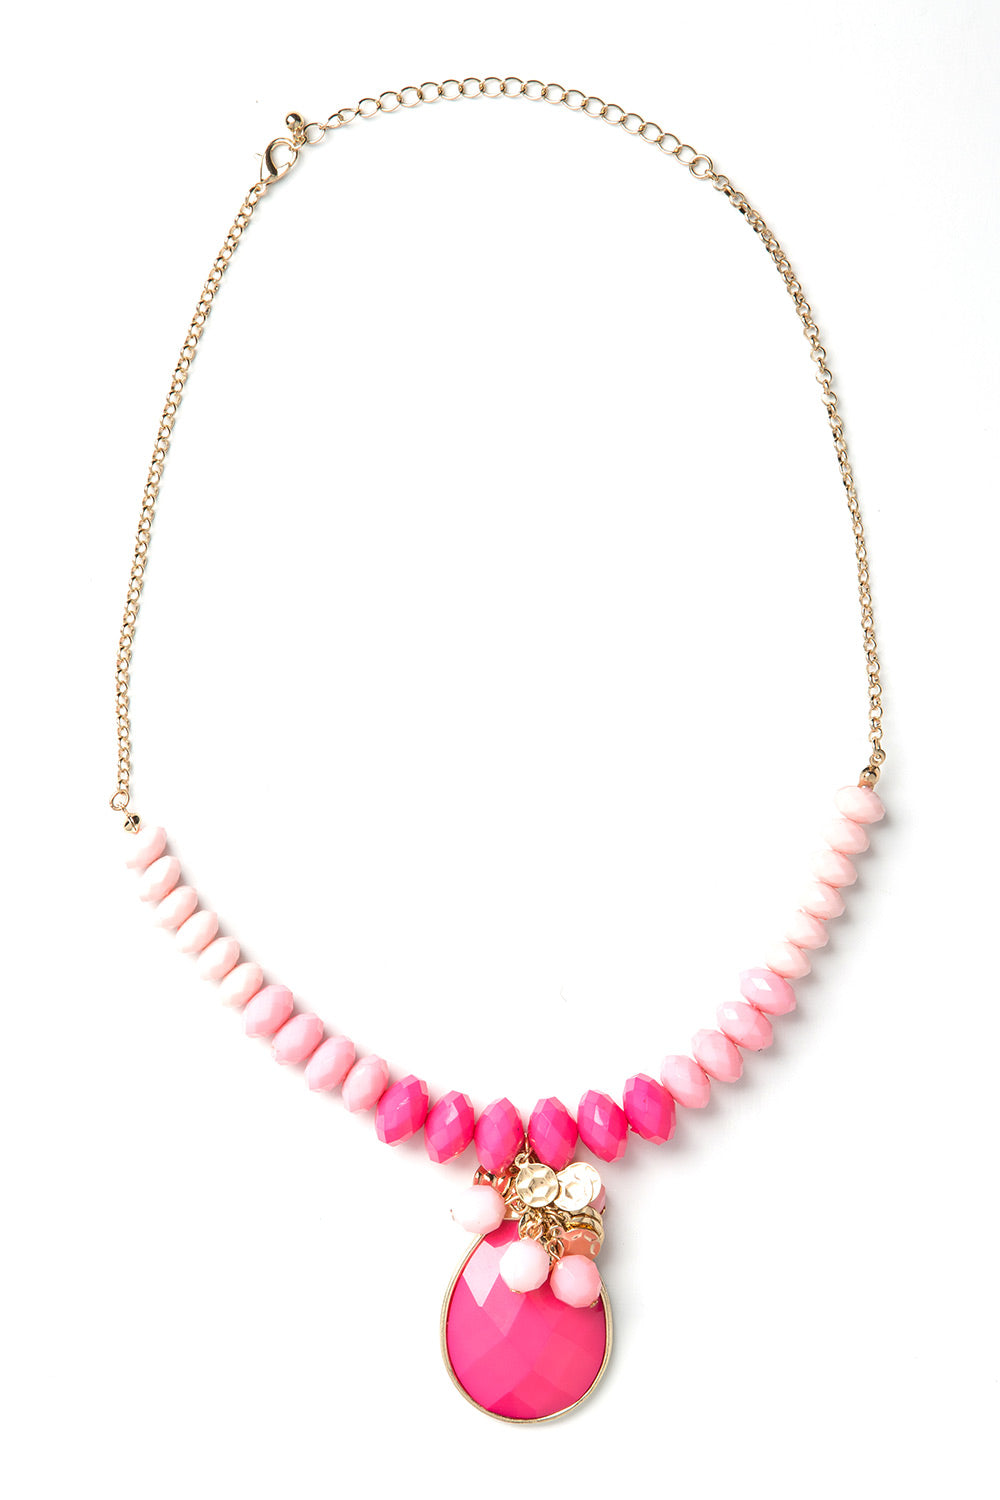 Type 1 Pink Ombre Necklace